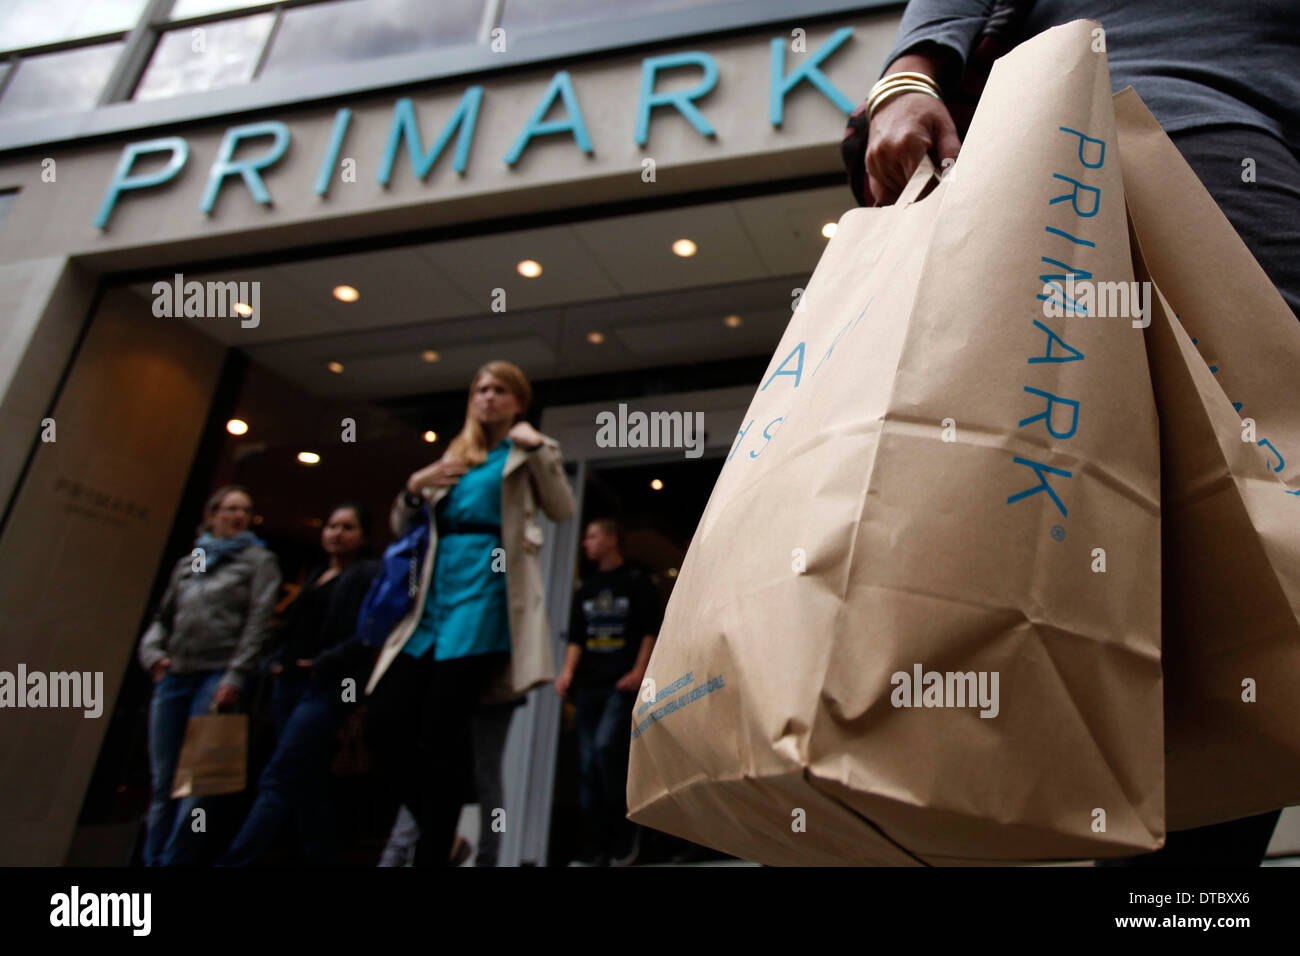 A general view of the new Oxford Street Primark store in central London, Britain 20 September 2012. - Stock Image